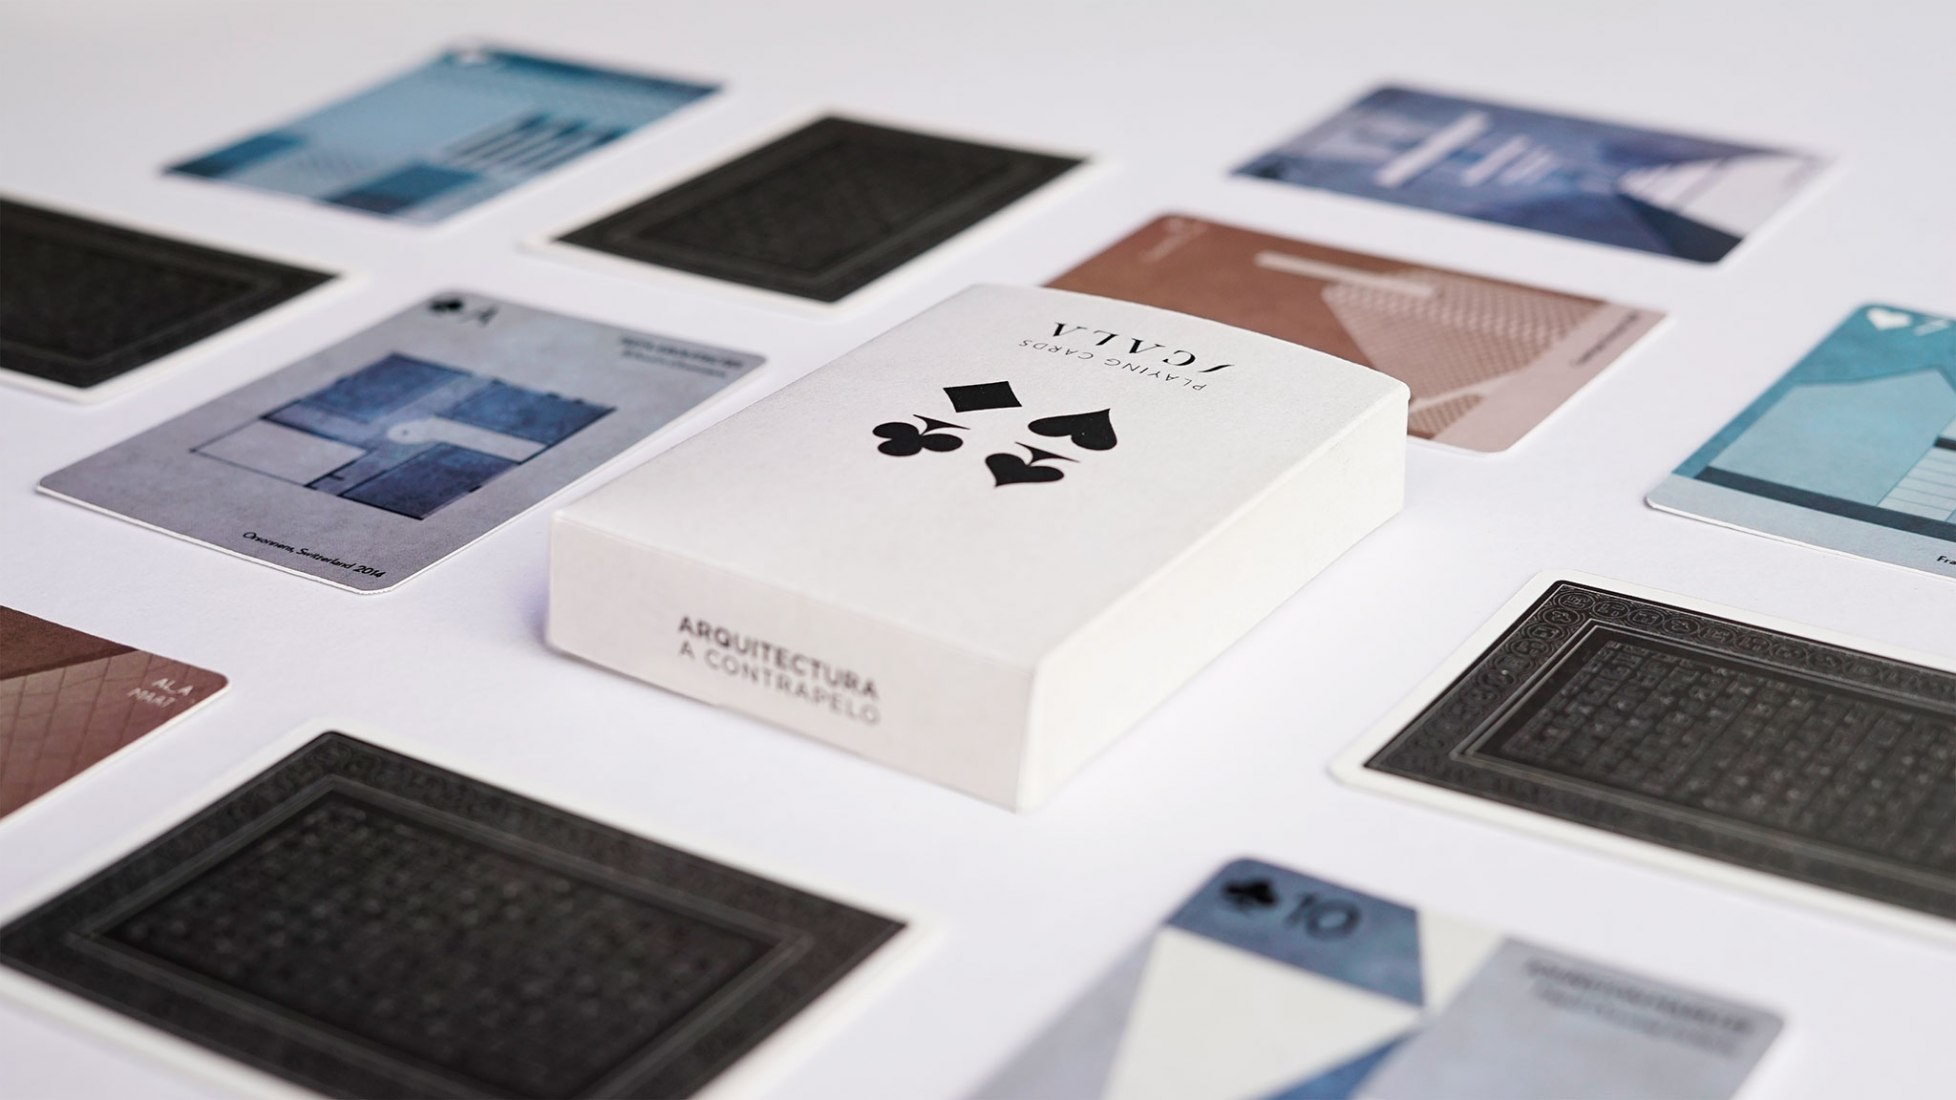 SCALA · Architecture Playing Cards by Arquitectura a contrapelo.